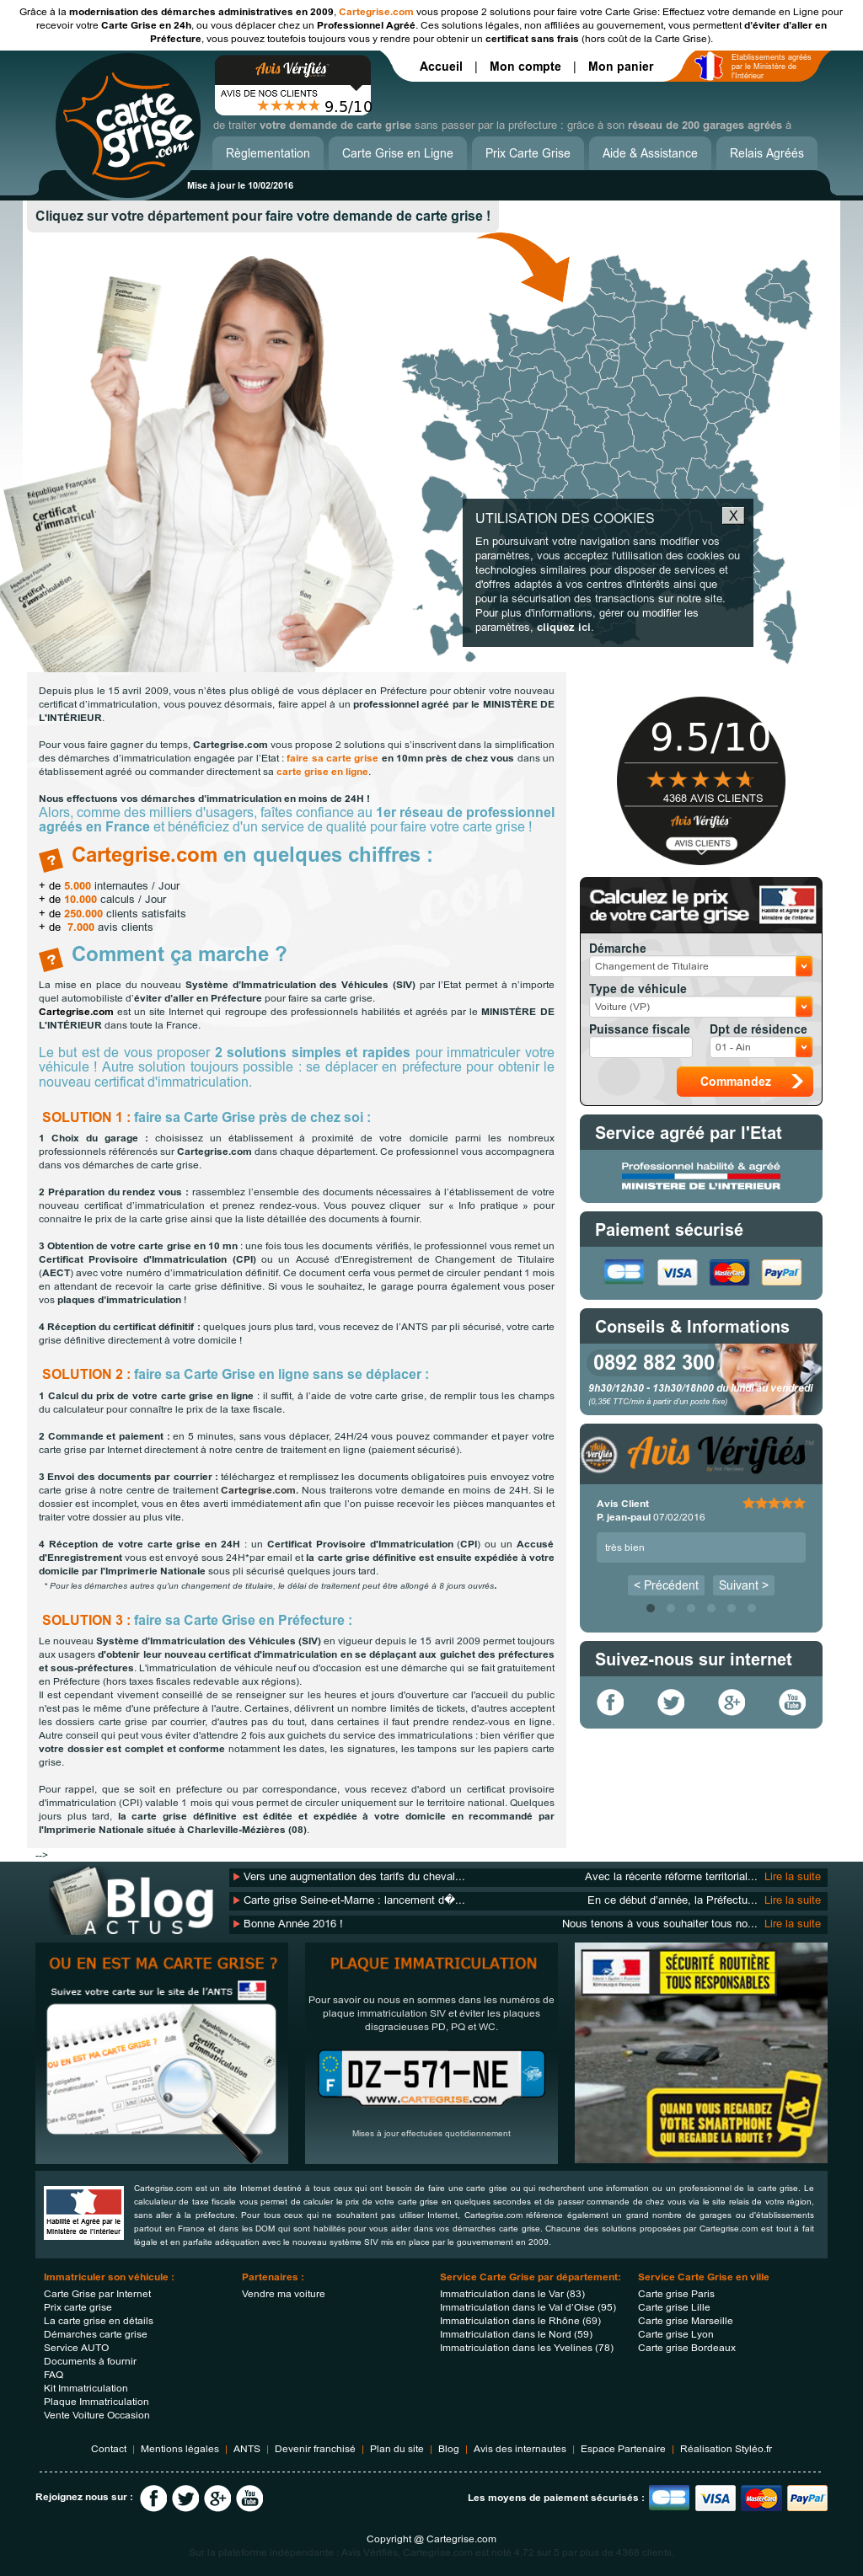 carte grise minute document a fournir Cartegrise Competitors, Revenue and Employees   Owler Company Profile